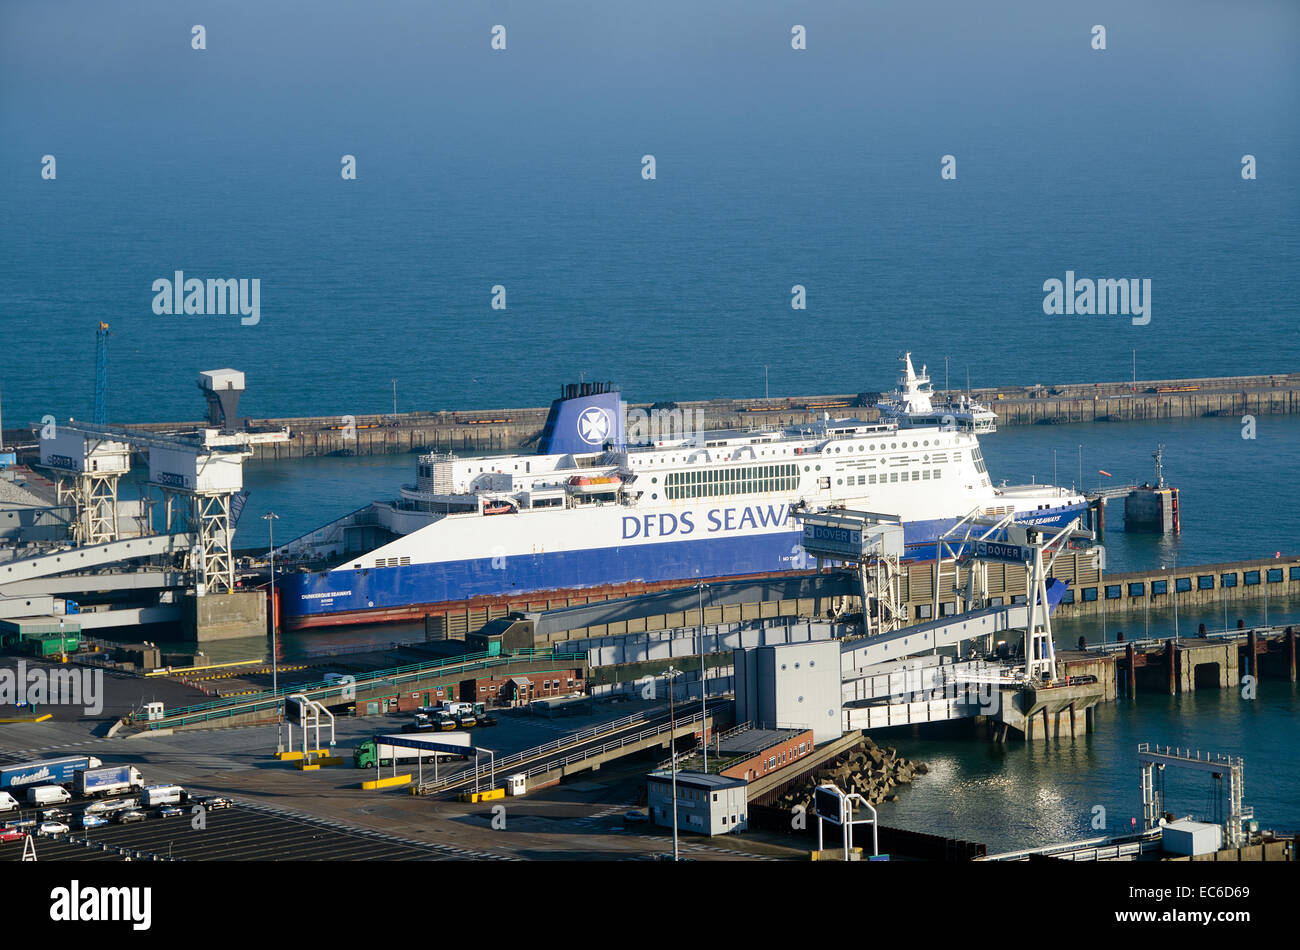 DFDS Ferry, Dunquerque Seaways docked at number 3 berth at Dower Eastern Docks.  Dover is the busiest ferry port - Stock Image